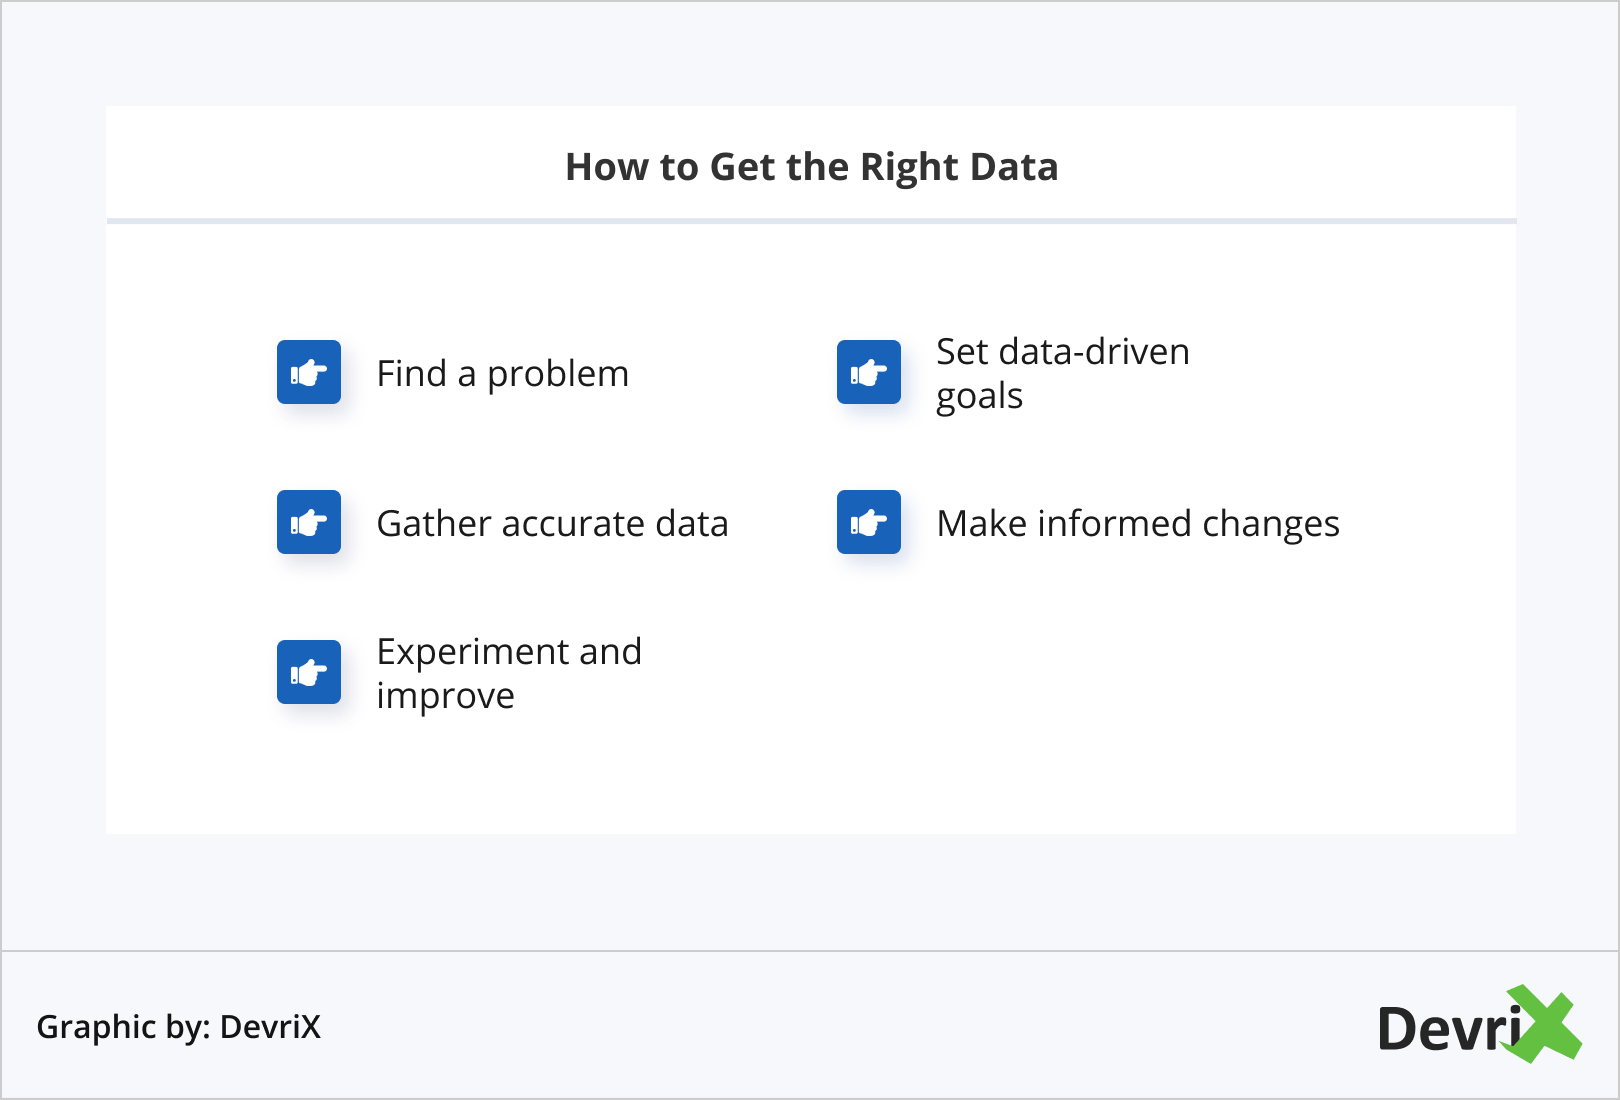 How to Get the Right Data